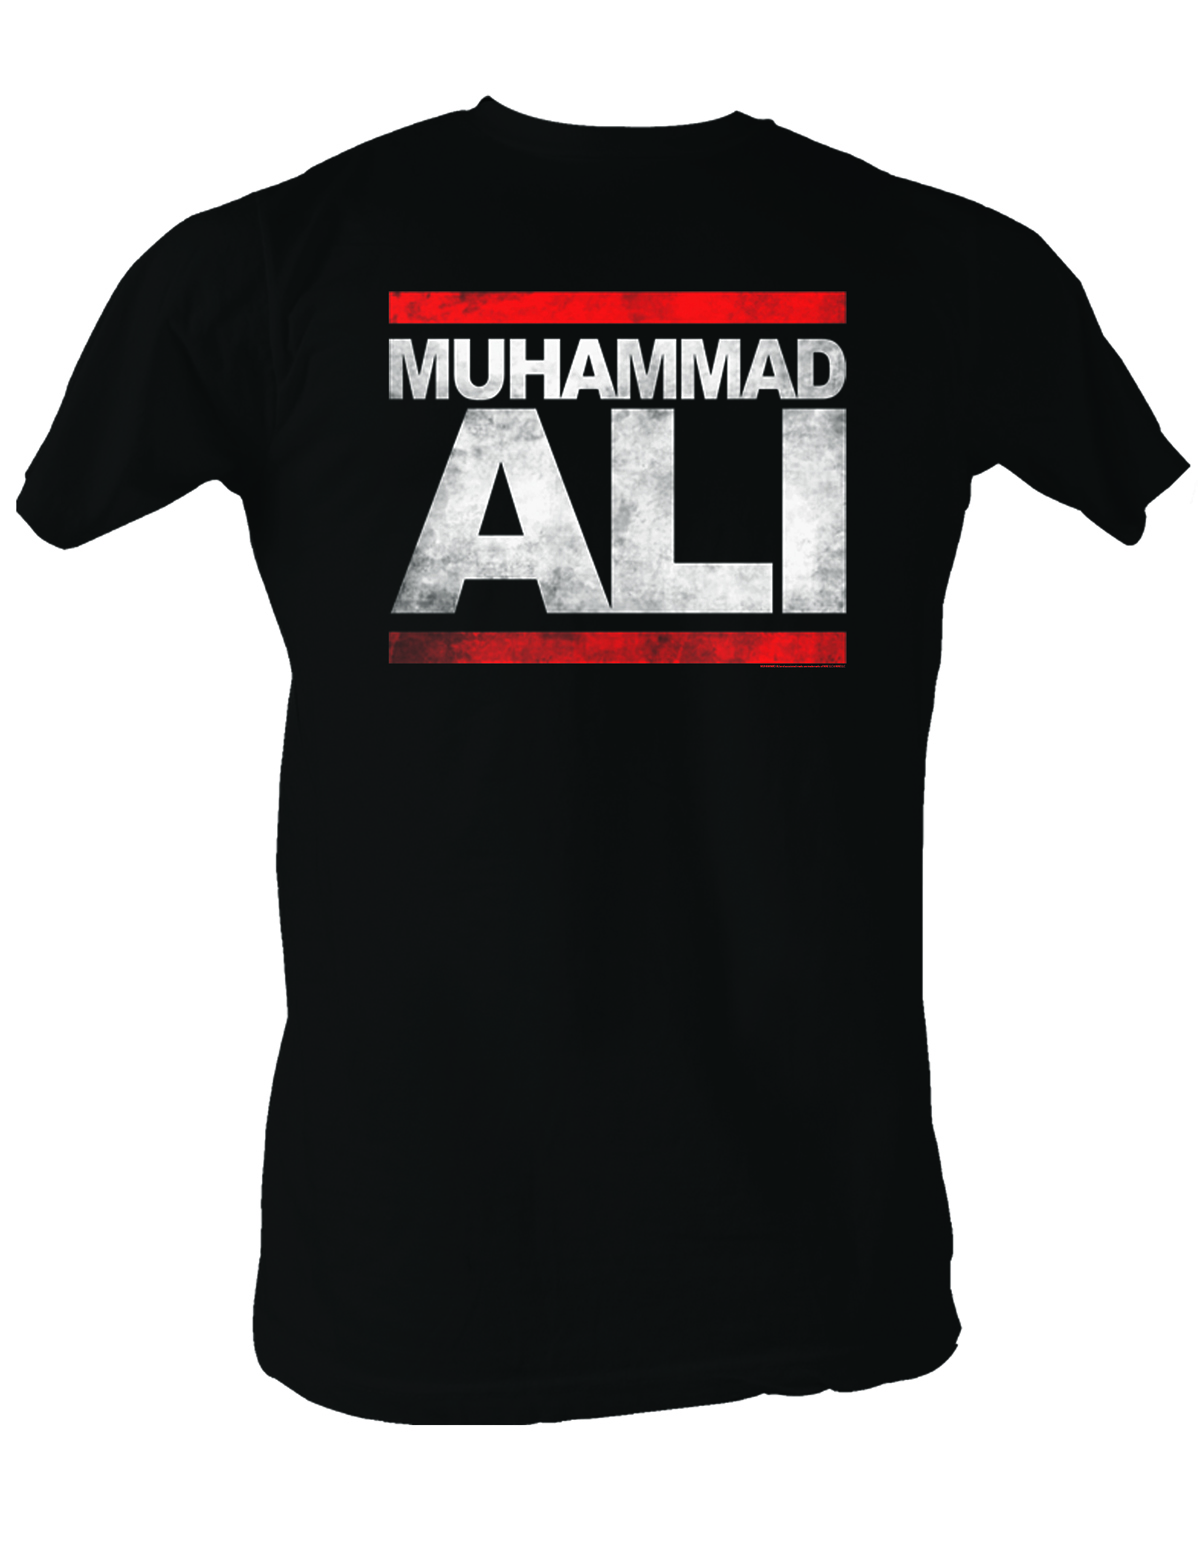 muhammad ali t shirts at muhammad ali. Black Bedroom Furniture Sets. Home Design Ideas